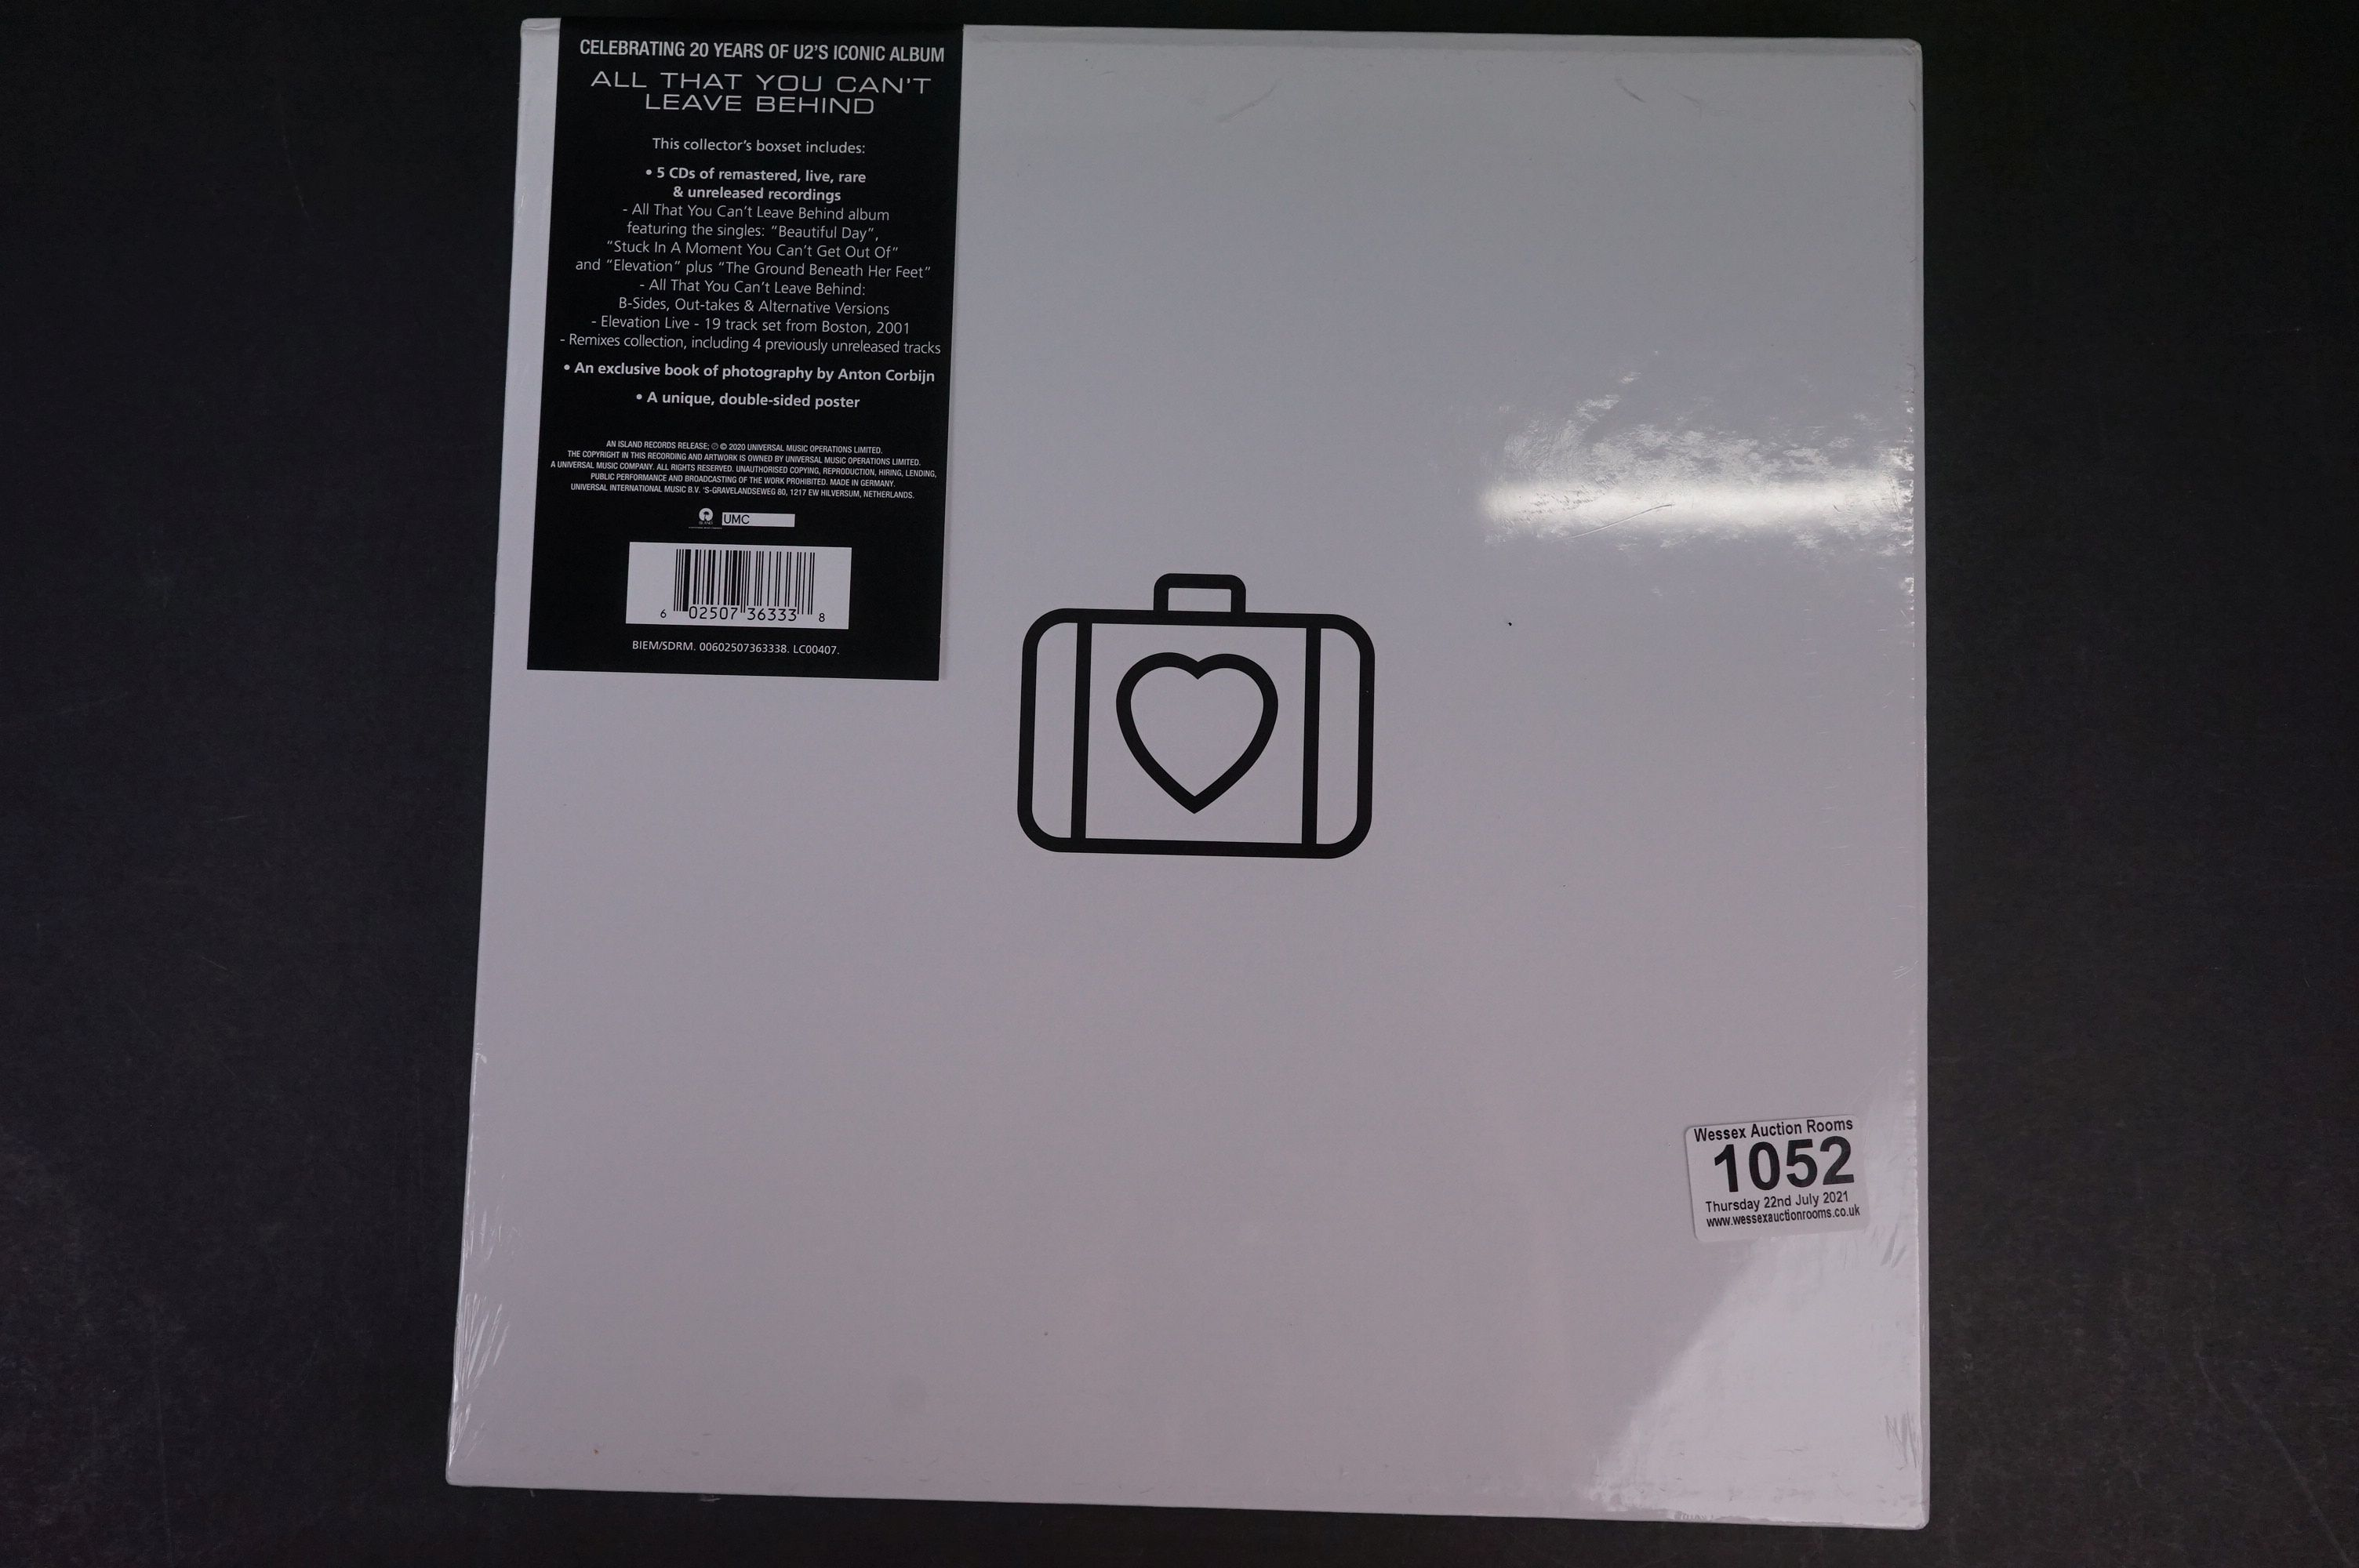 CD - U2 All That You Can't Leave Behind Super Deluxe CD Box Set, LC00407, sealed - Image 2 of 2